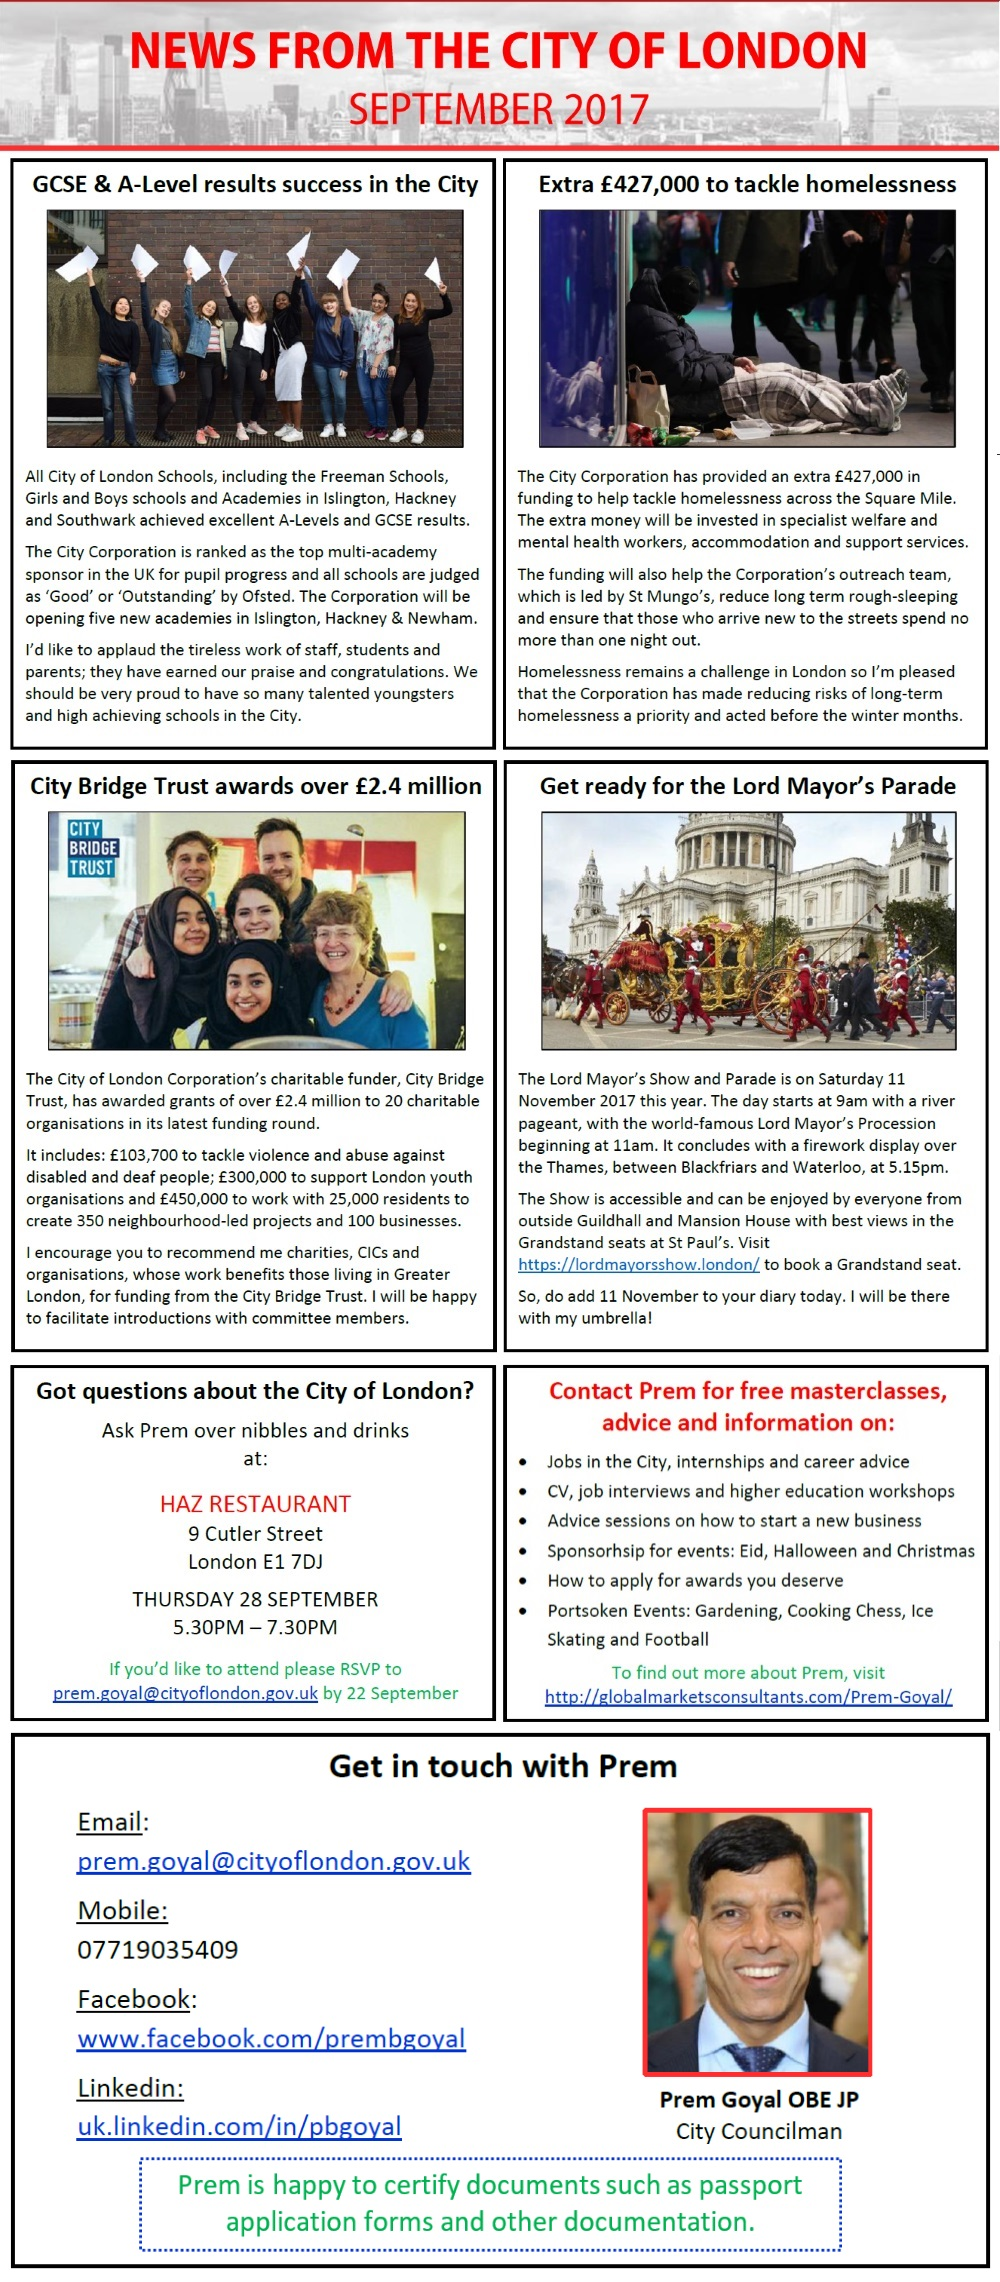 City of London News - September 2017